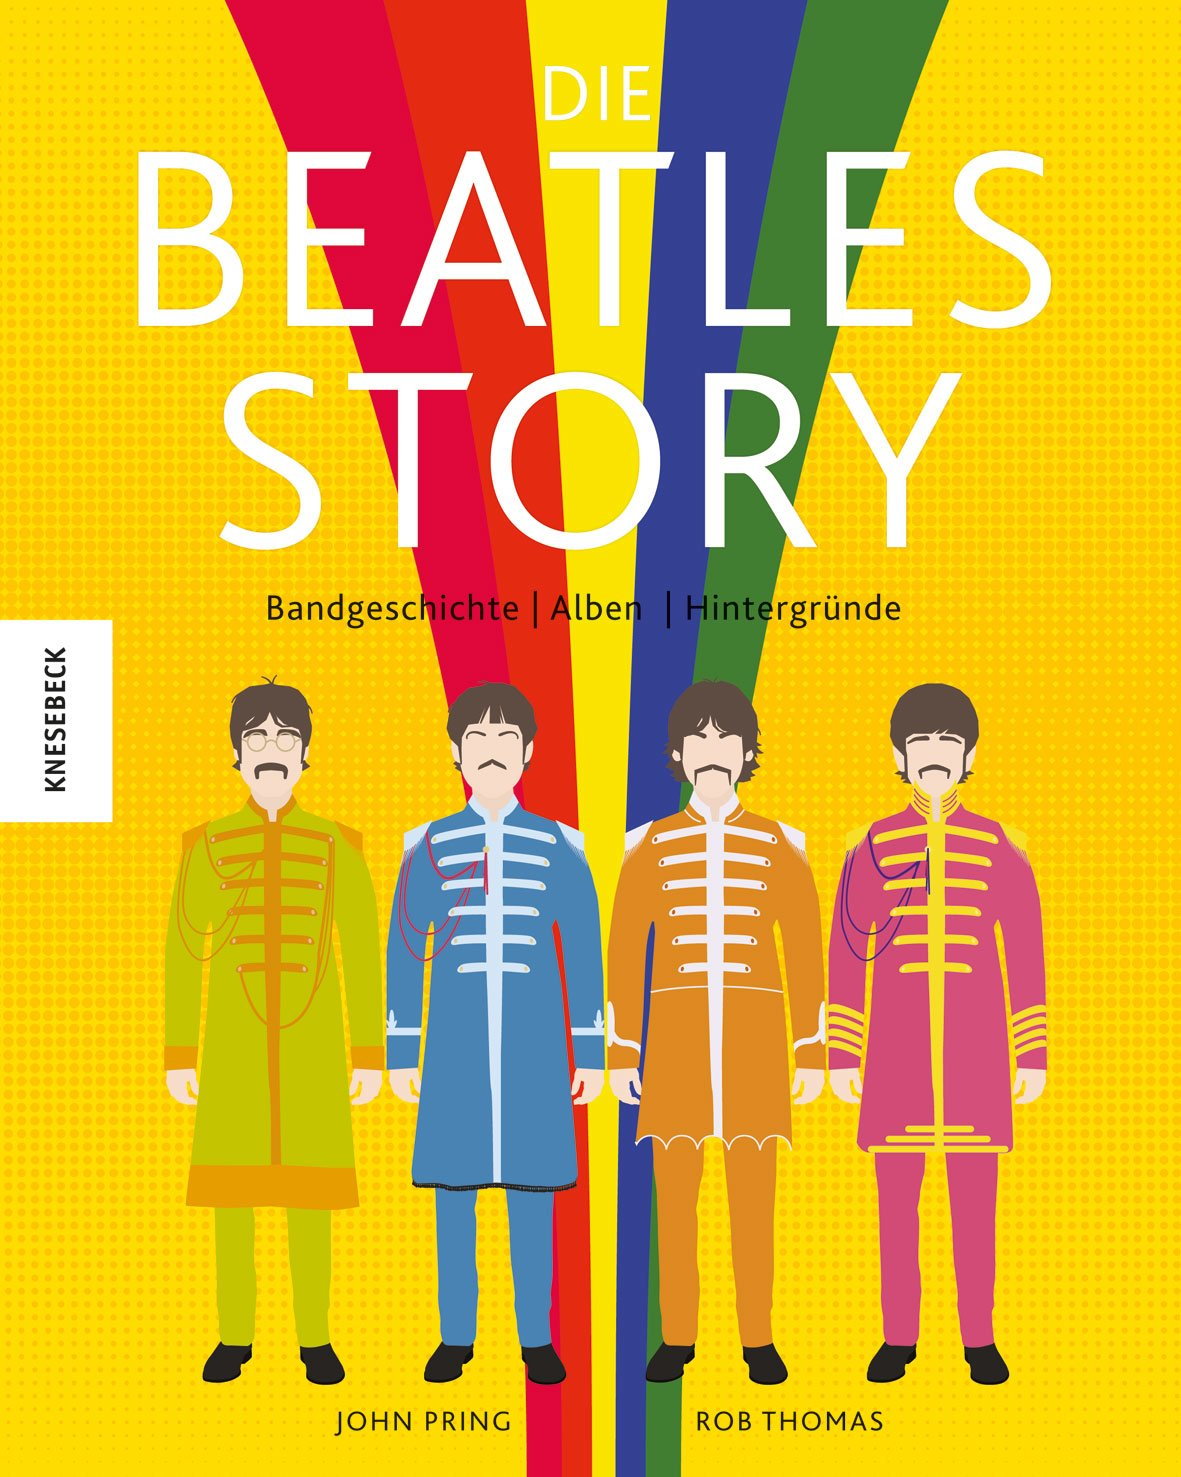 Die Beatles-Story: Bandgeschichte – Alben – Hintergründe in witzigen Illustrationen (John Lennon, Paul McCartney, Ringo Starr, George Harrison)